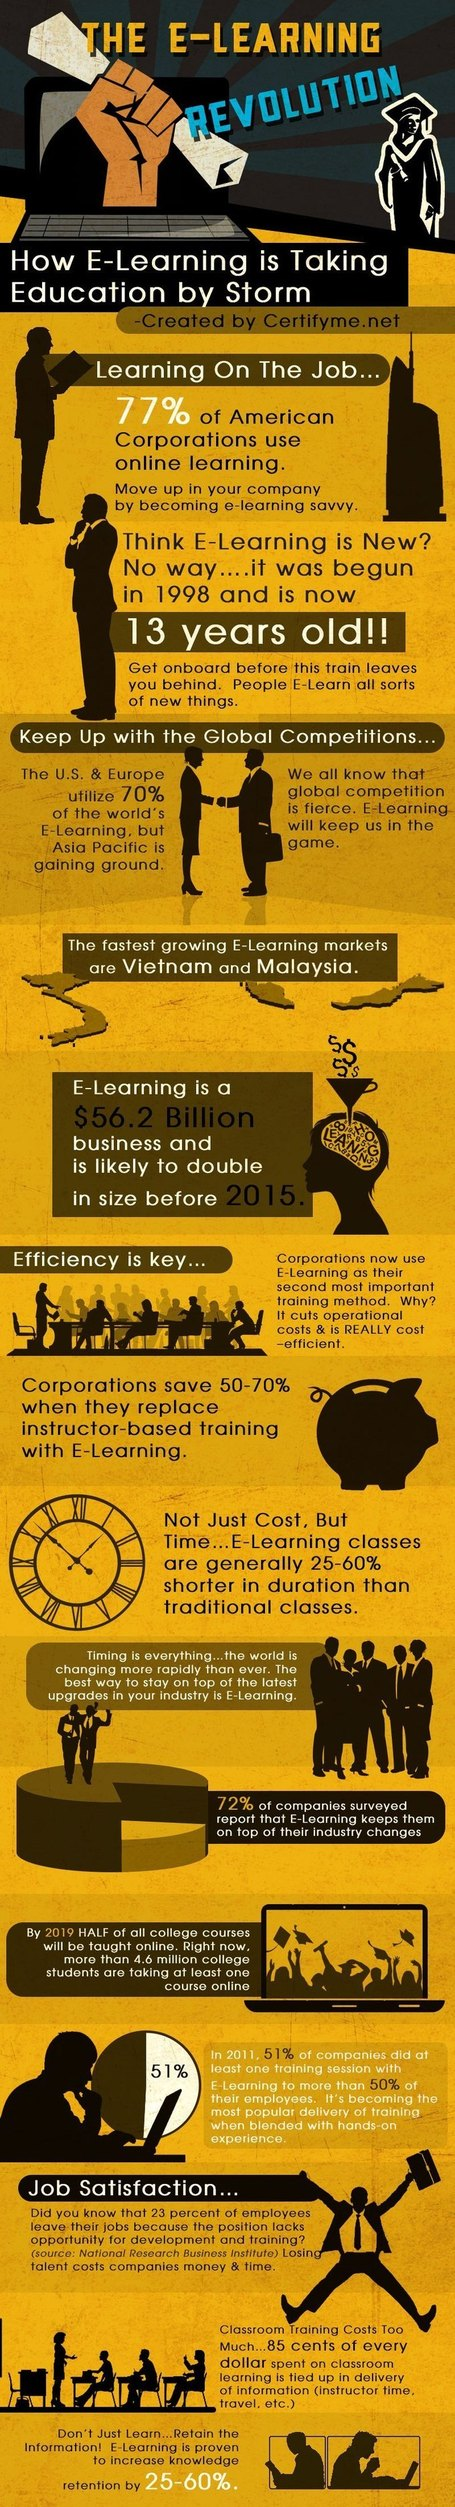 Important eLearning Statistics for 2013 | Master Learning and Innovation Stenden | Scoop.it